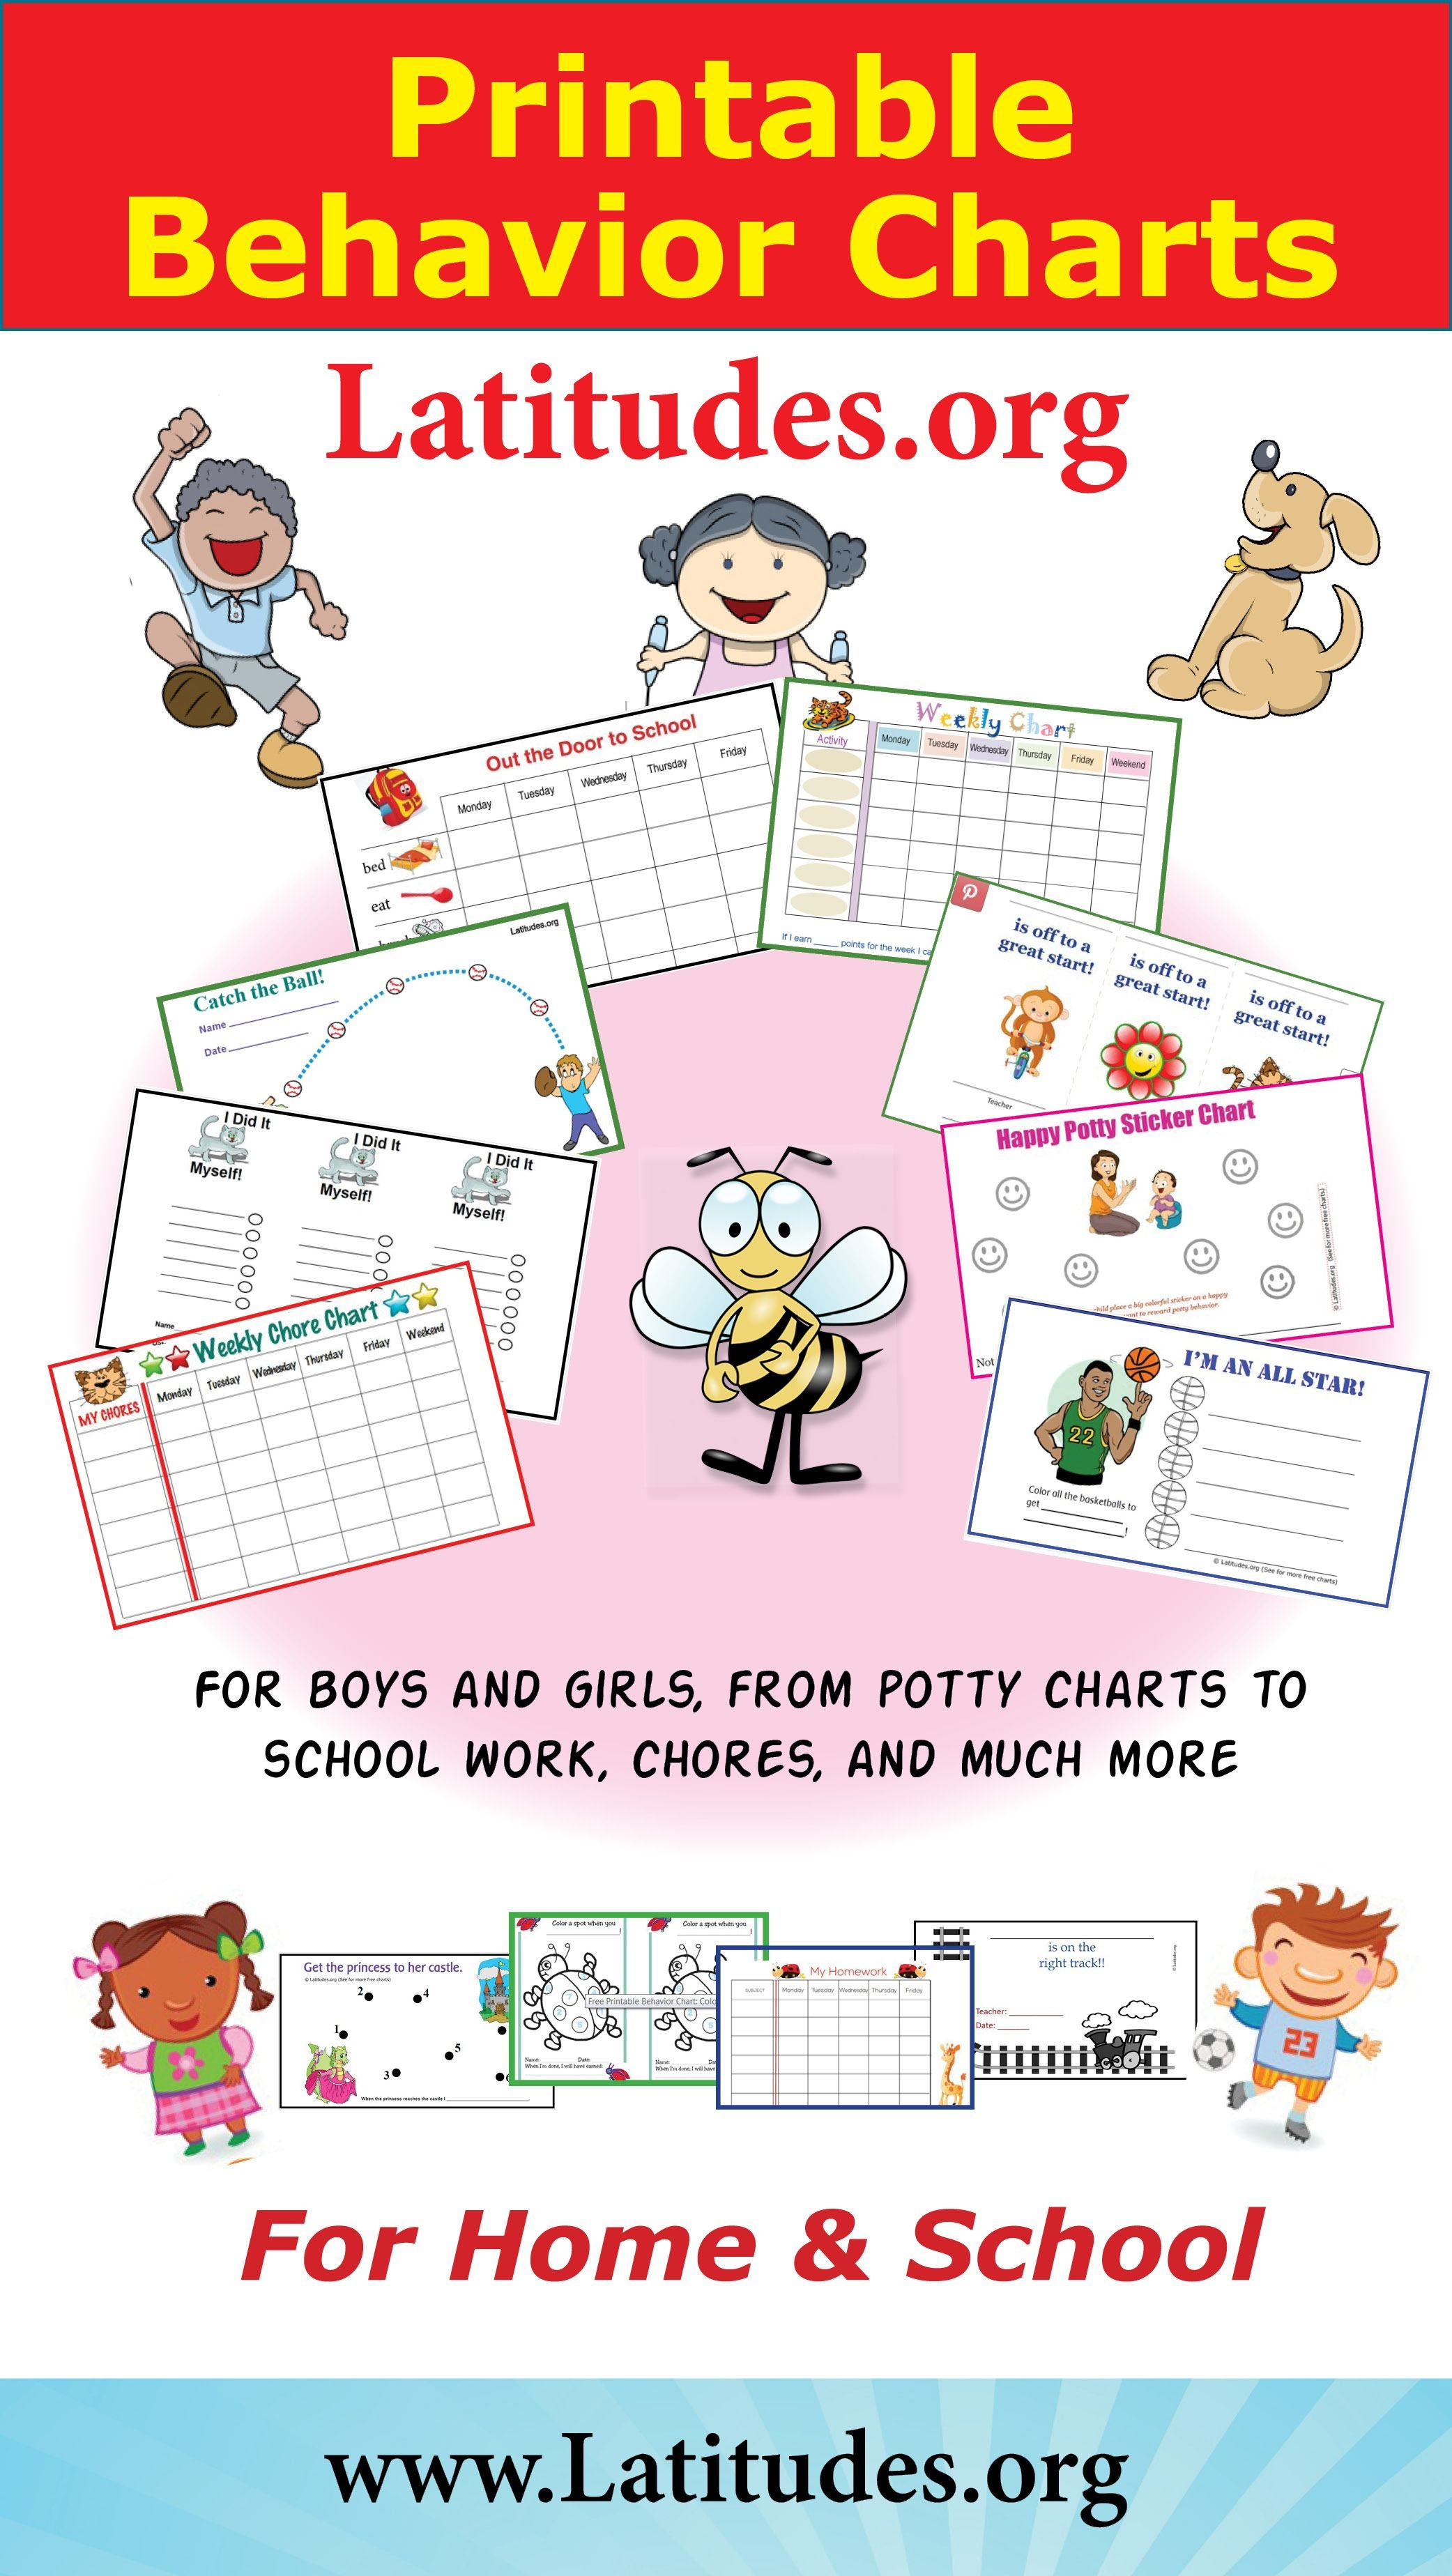 Free Printable Behavior Charts For Home And School   Behavior Charts - Free Printable Behaviour Charts For Home